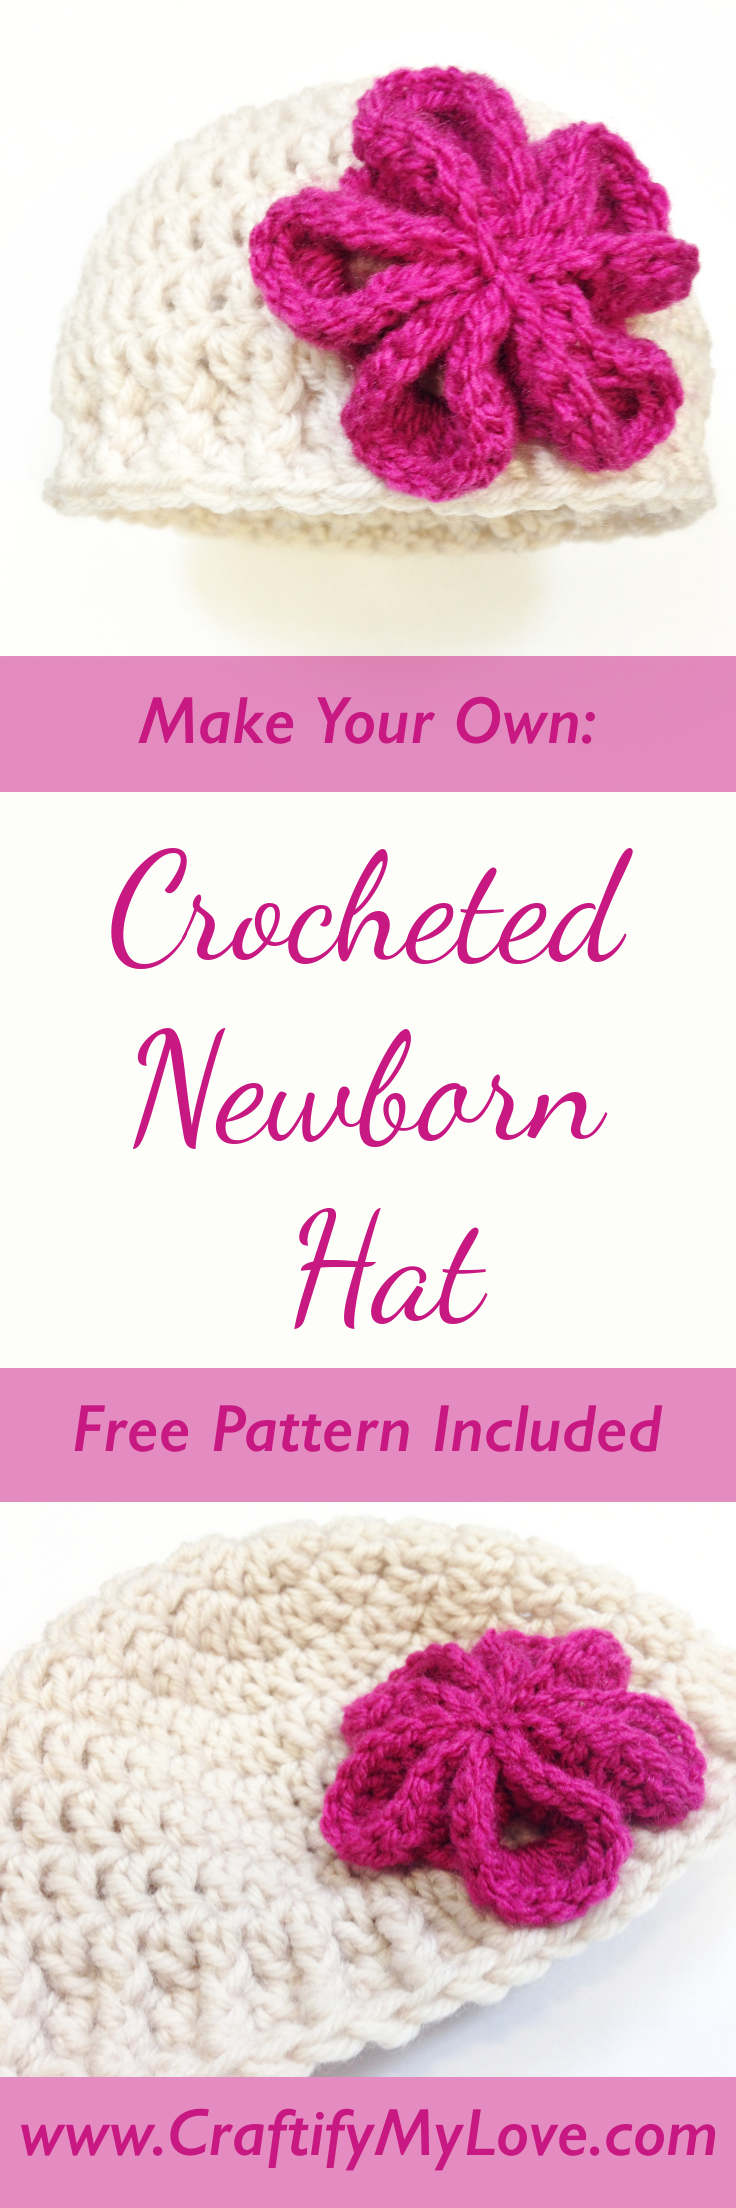 DIY Free Pattern For A Crocheted Newborn Hat With Pink Flower made by Habiba from CraftifyMyLove.com